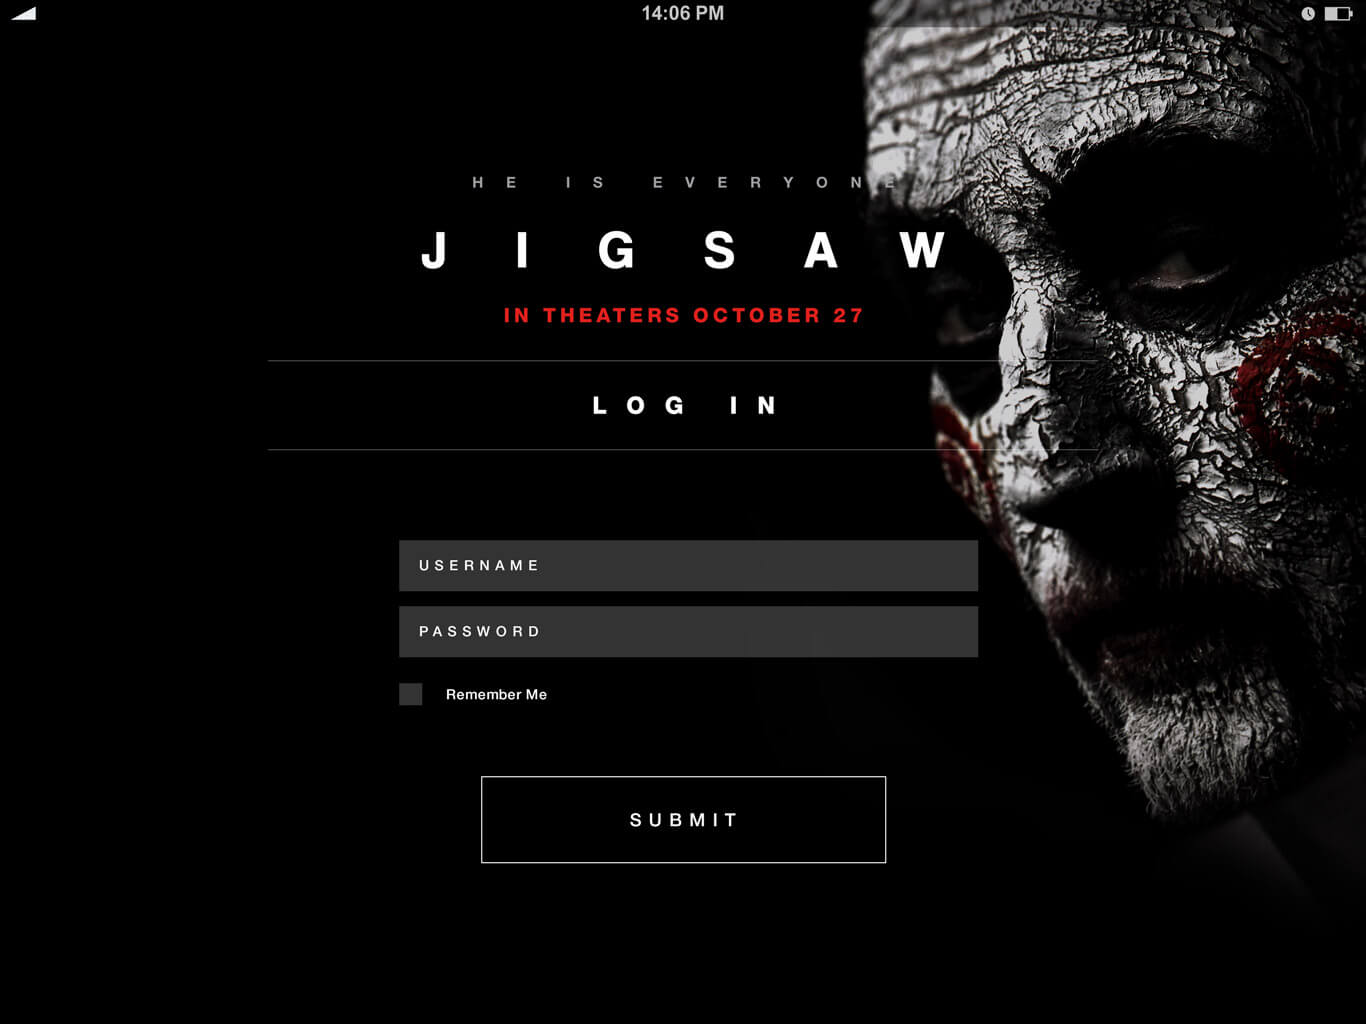 Jigsaw NY Comic Con Reservation App